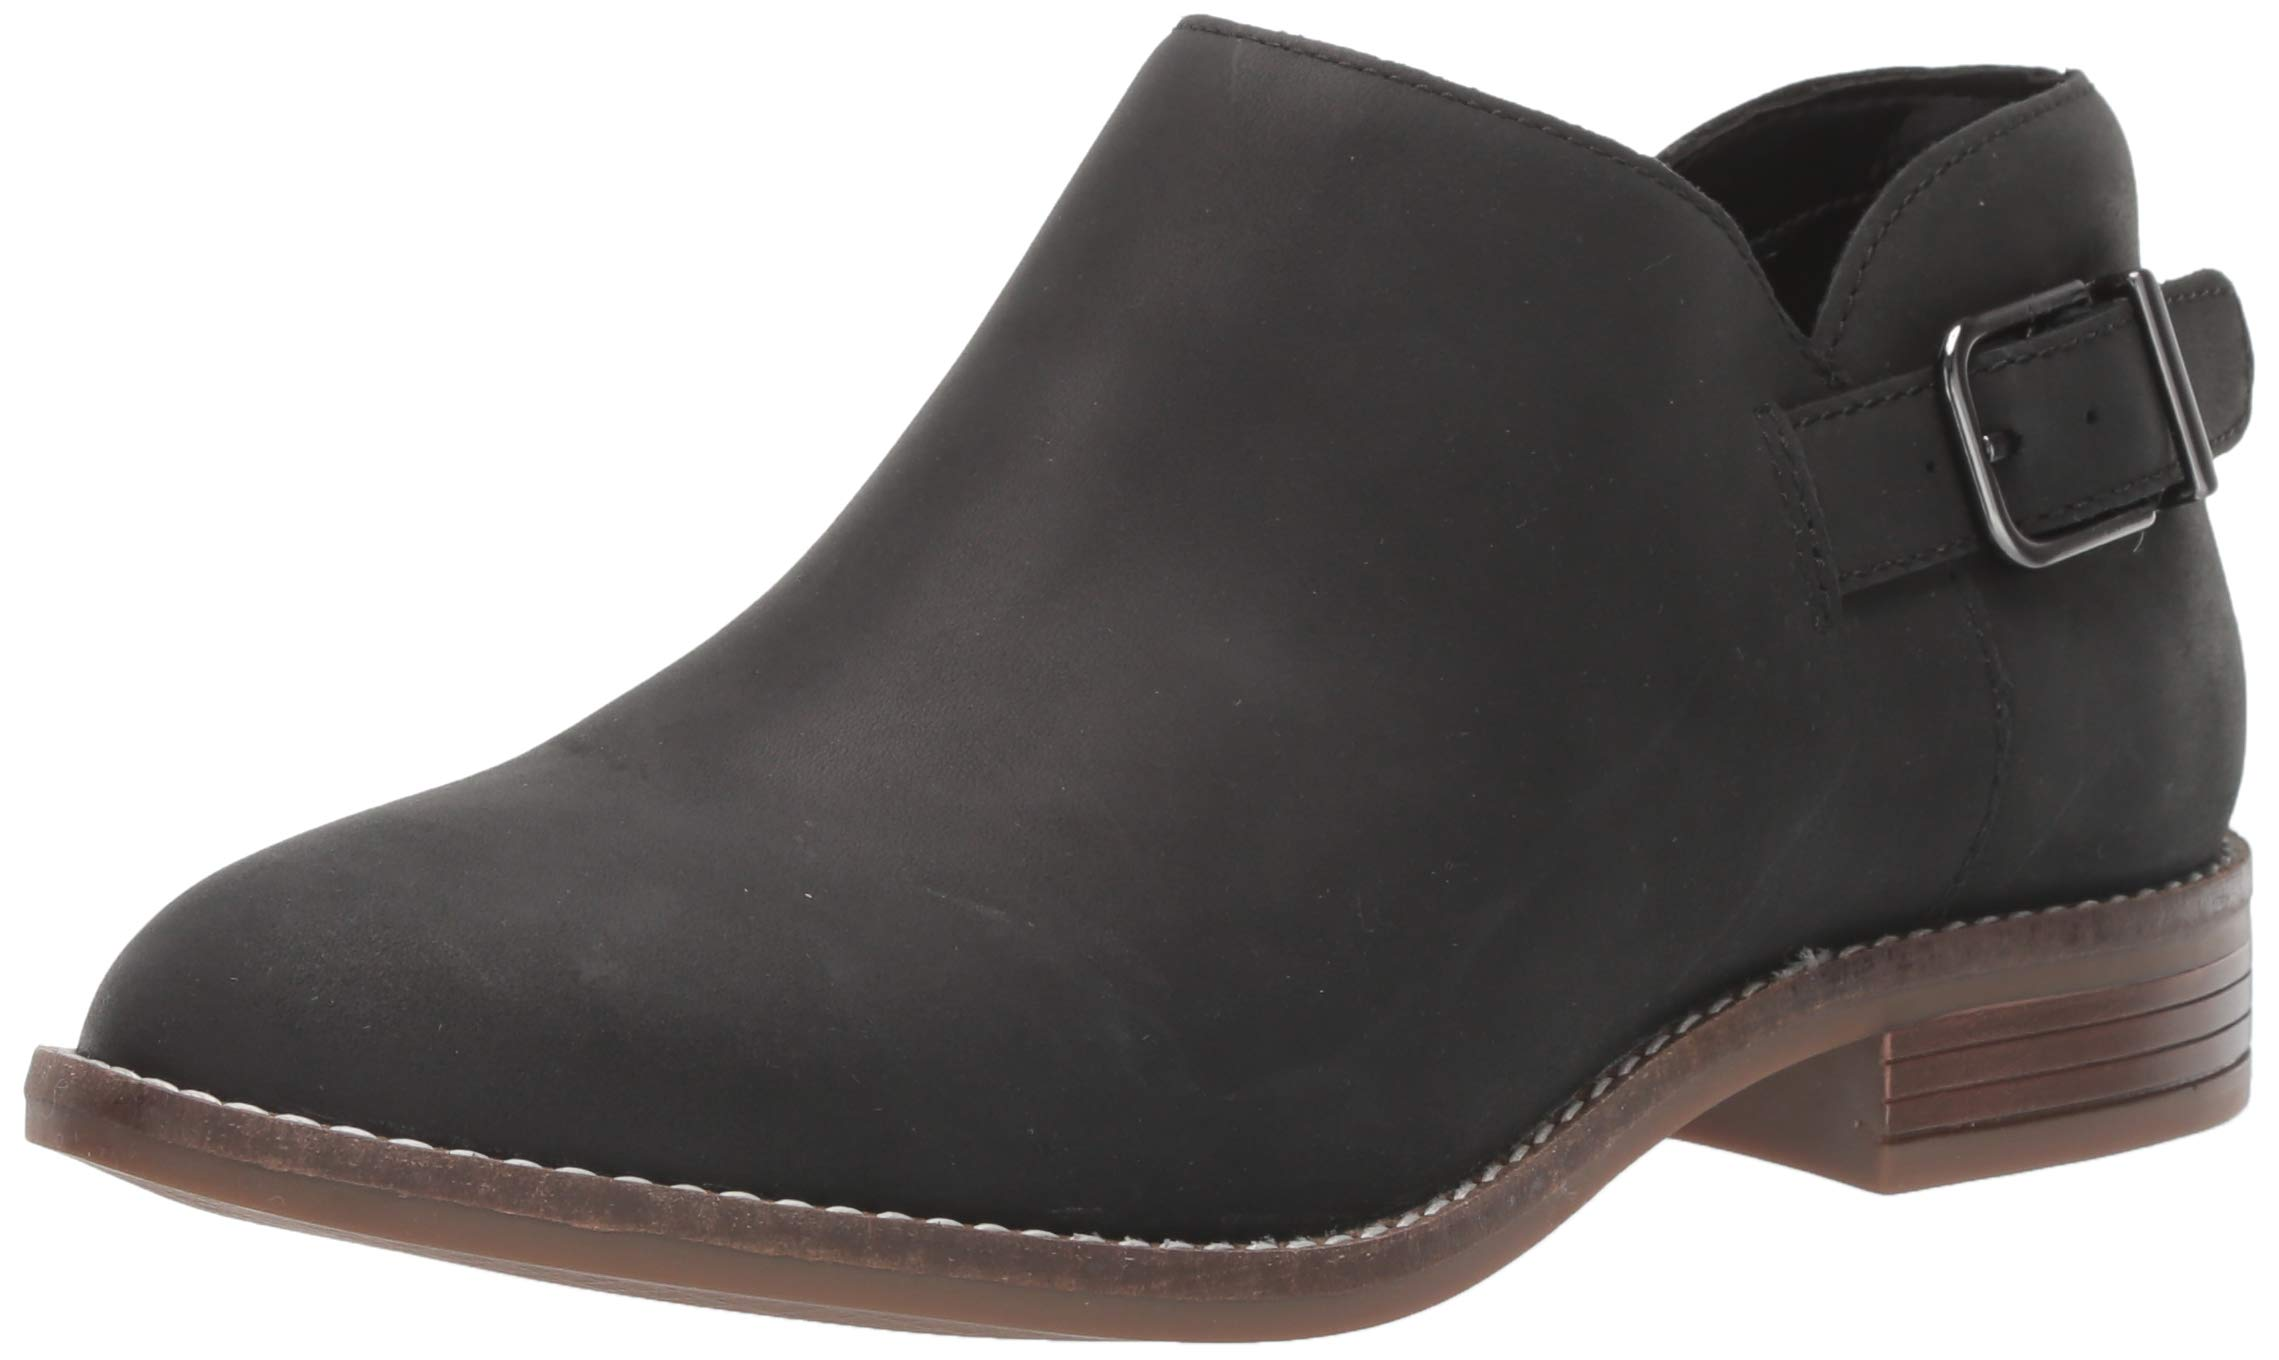 CLARKS Women's Camzin Pull Ankle Boot, Black Leather, 120 M US by CLARKS